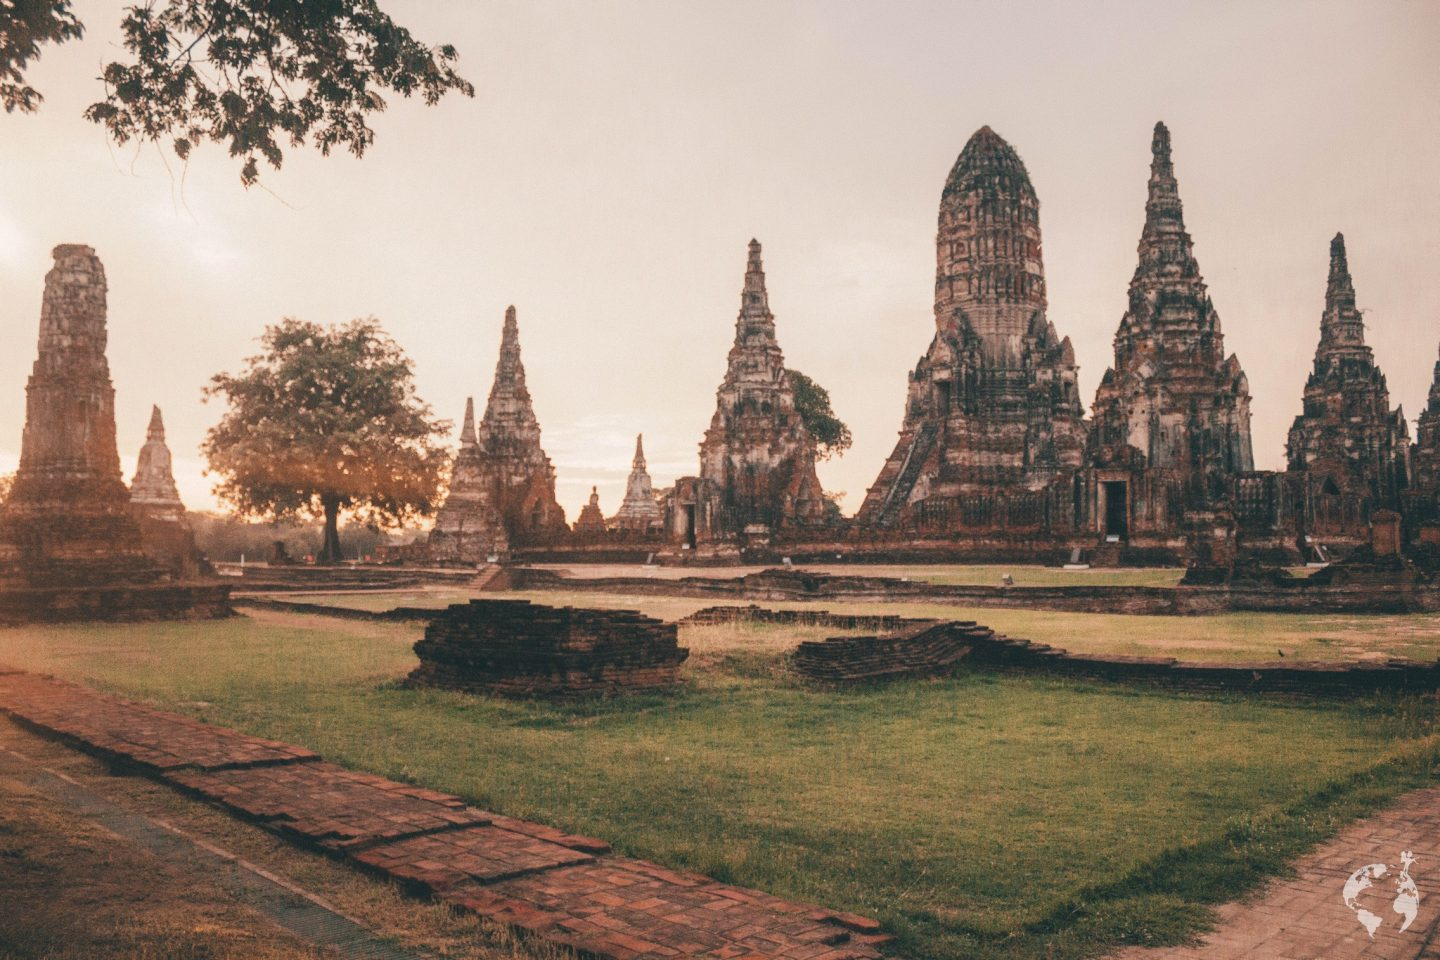 Day trip from Bangkok to Ayutthaya